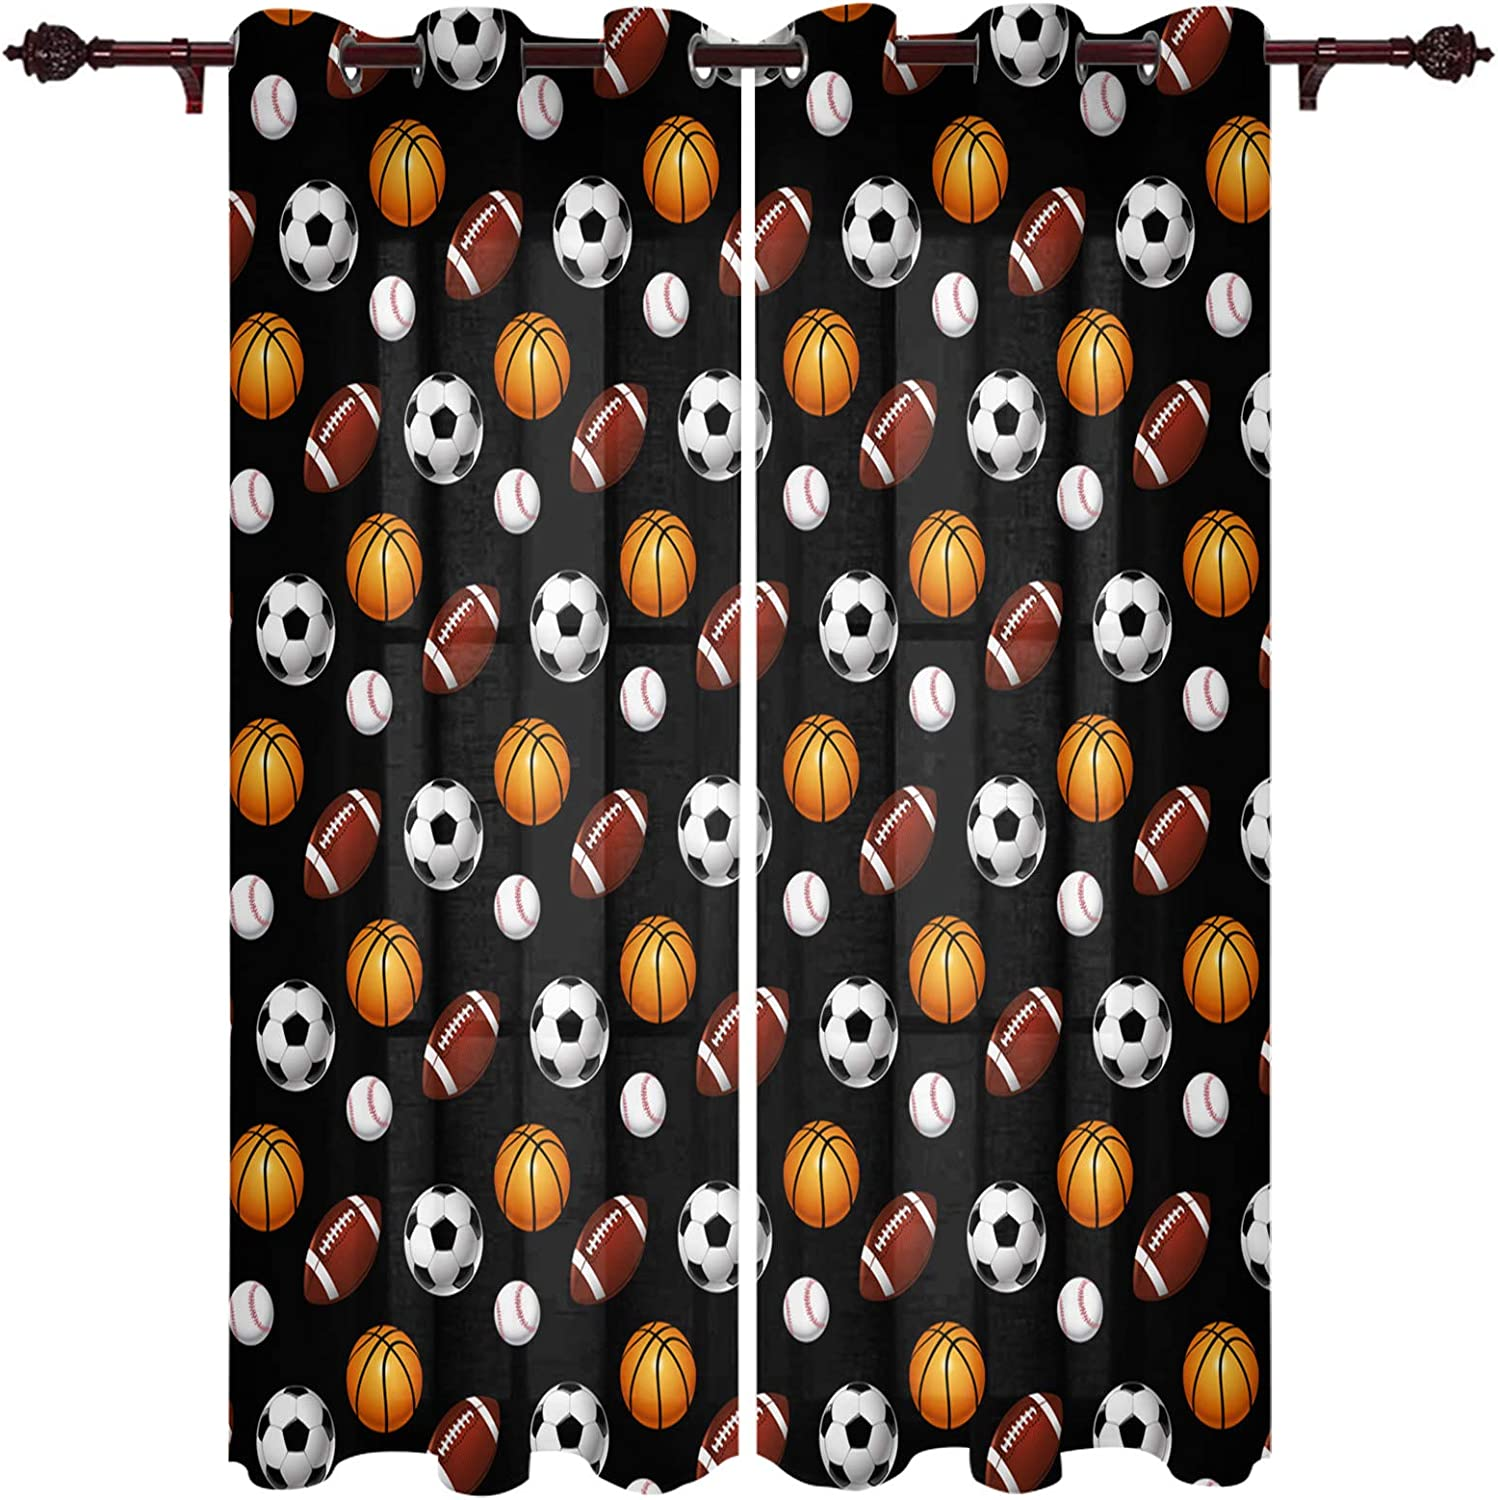 EZON-CH Window Treatments Grommet Piece Curtain Panels Cash special price Animer and price revision 2